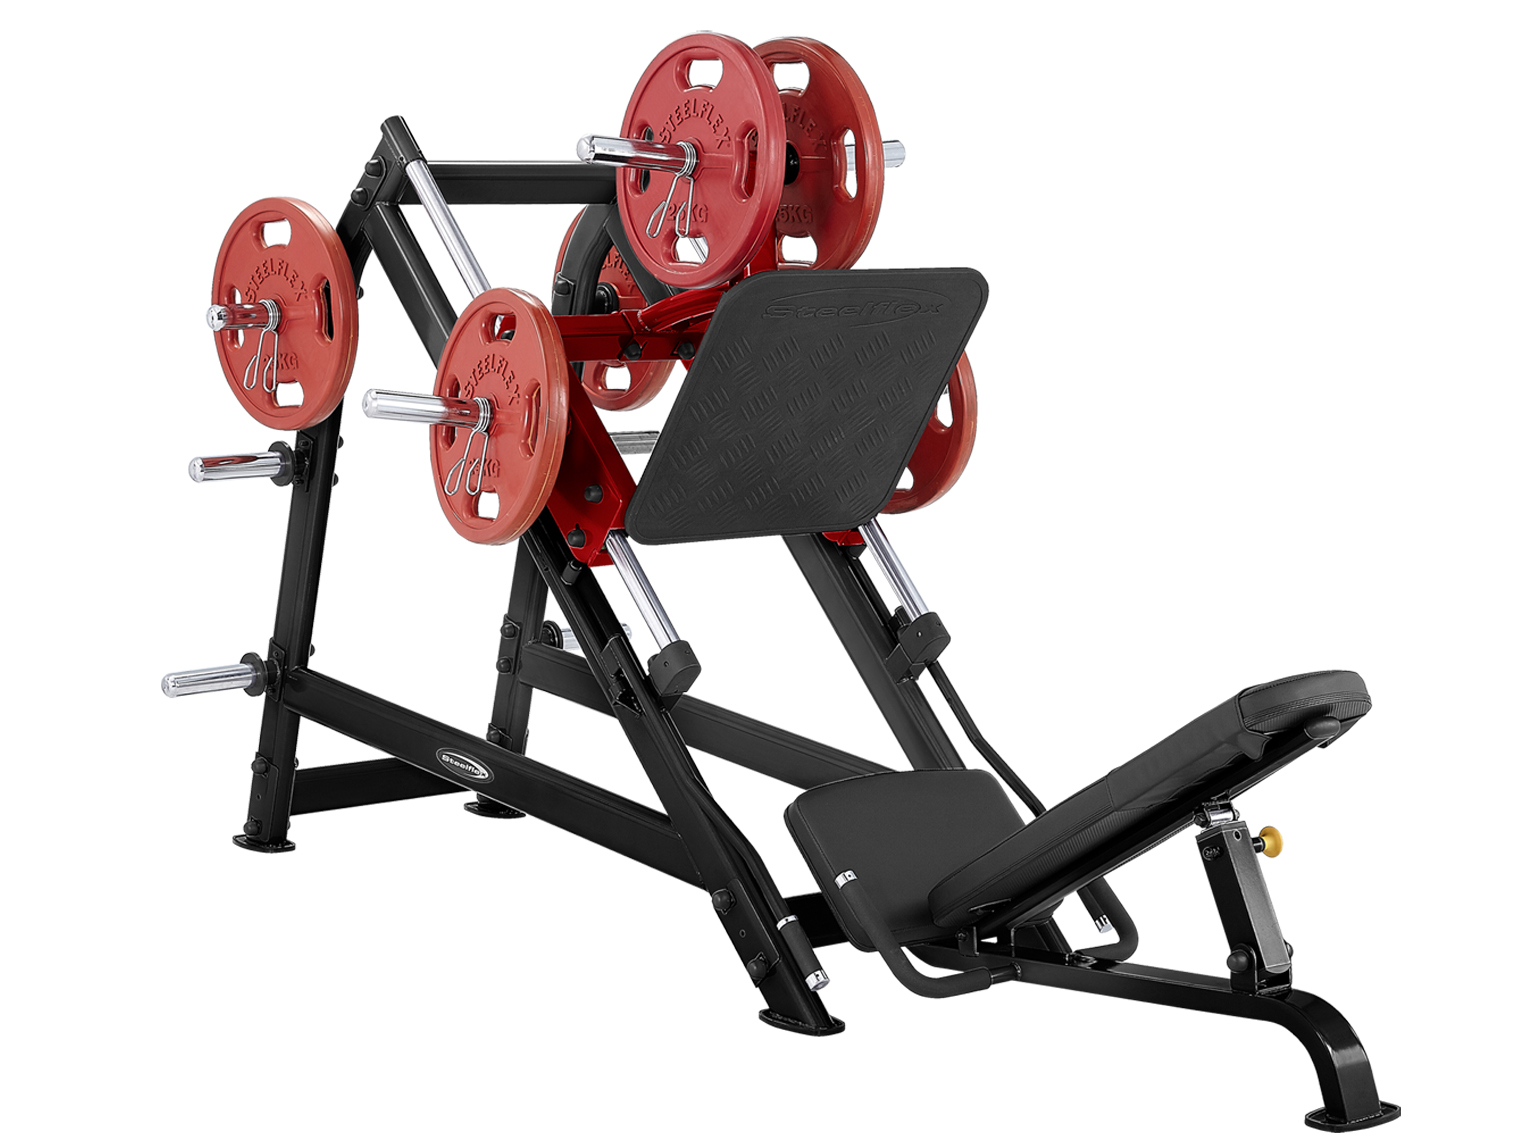 Steelflex Plate Loaded Decline Leg Press